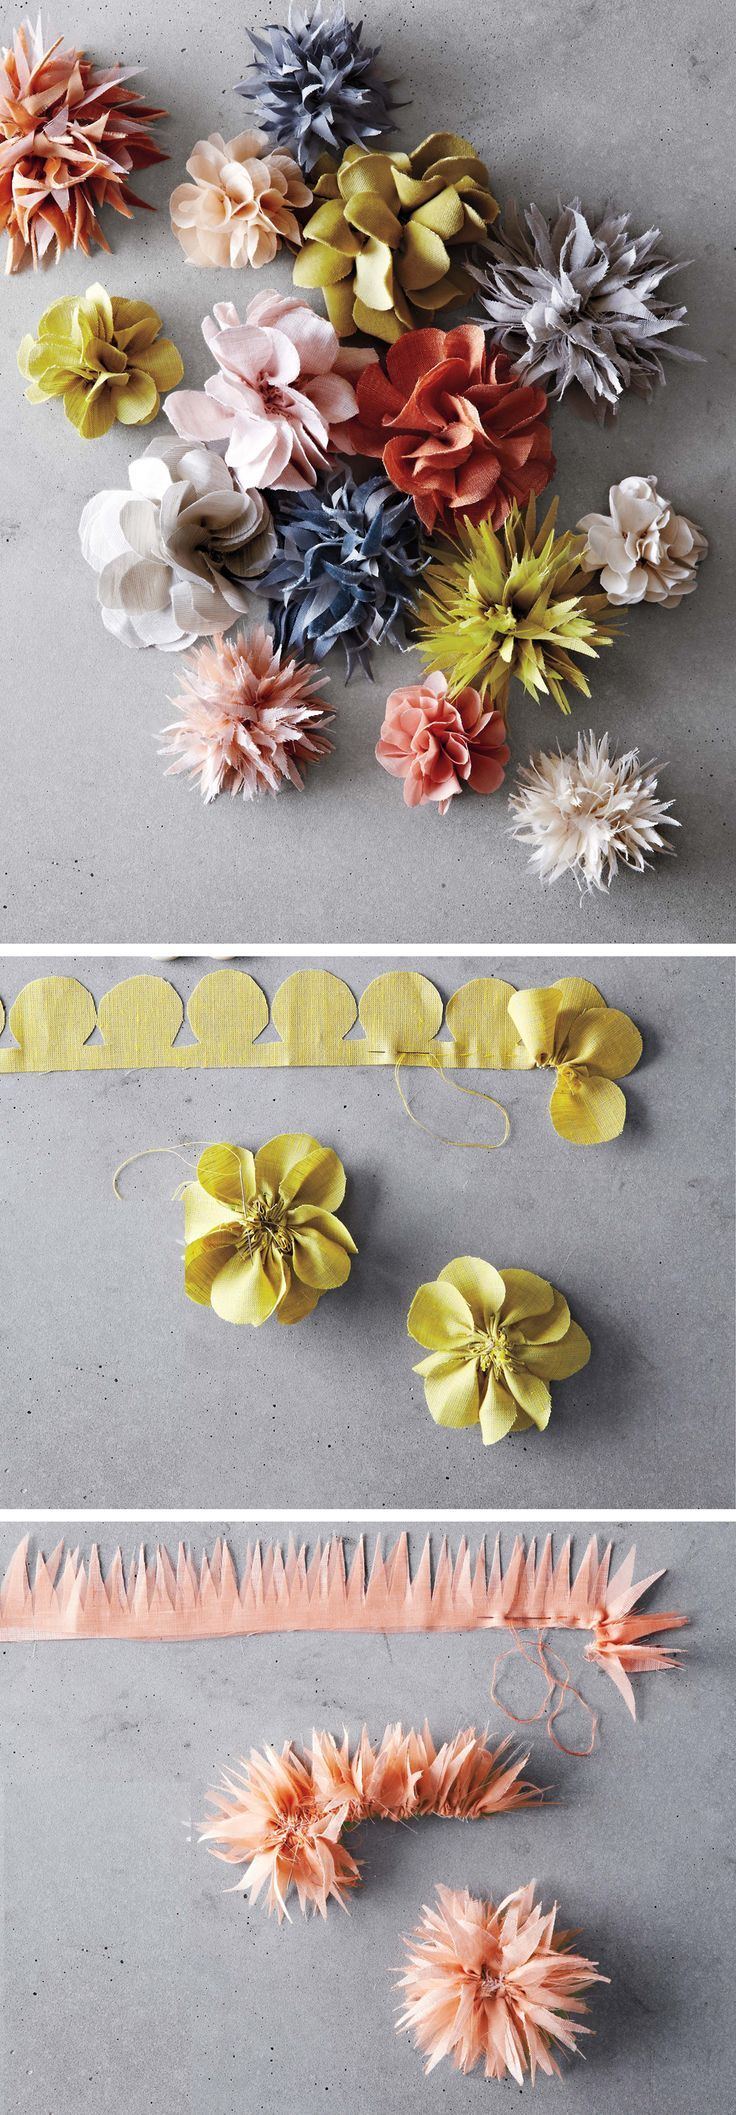 17 best images about crafts flowers paper on for Fabric crafts to make